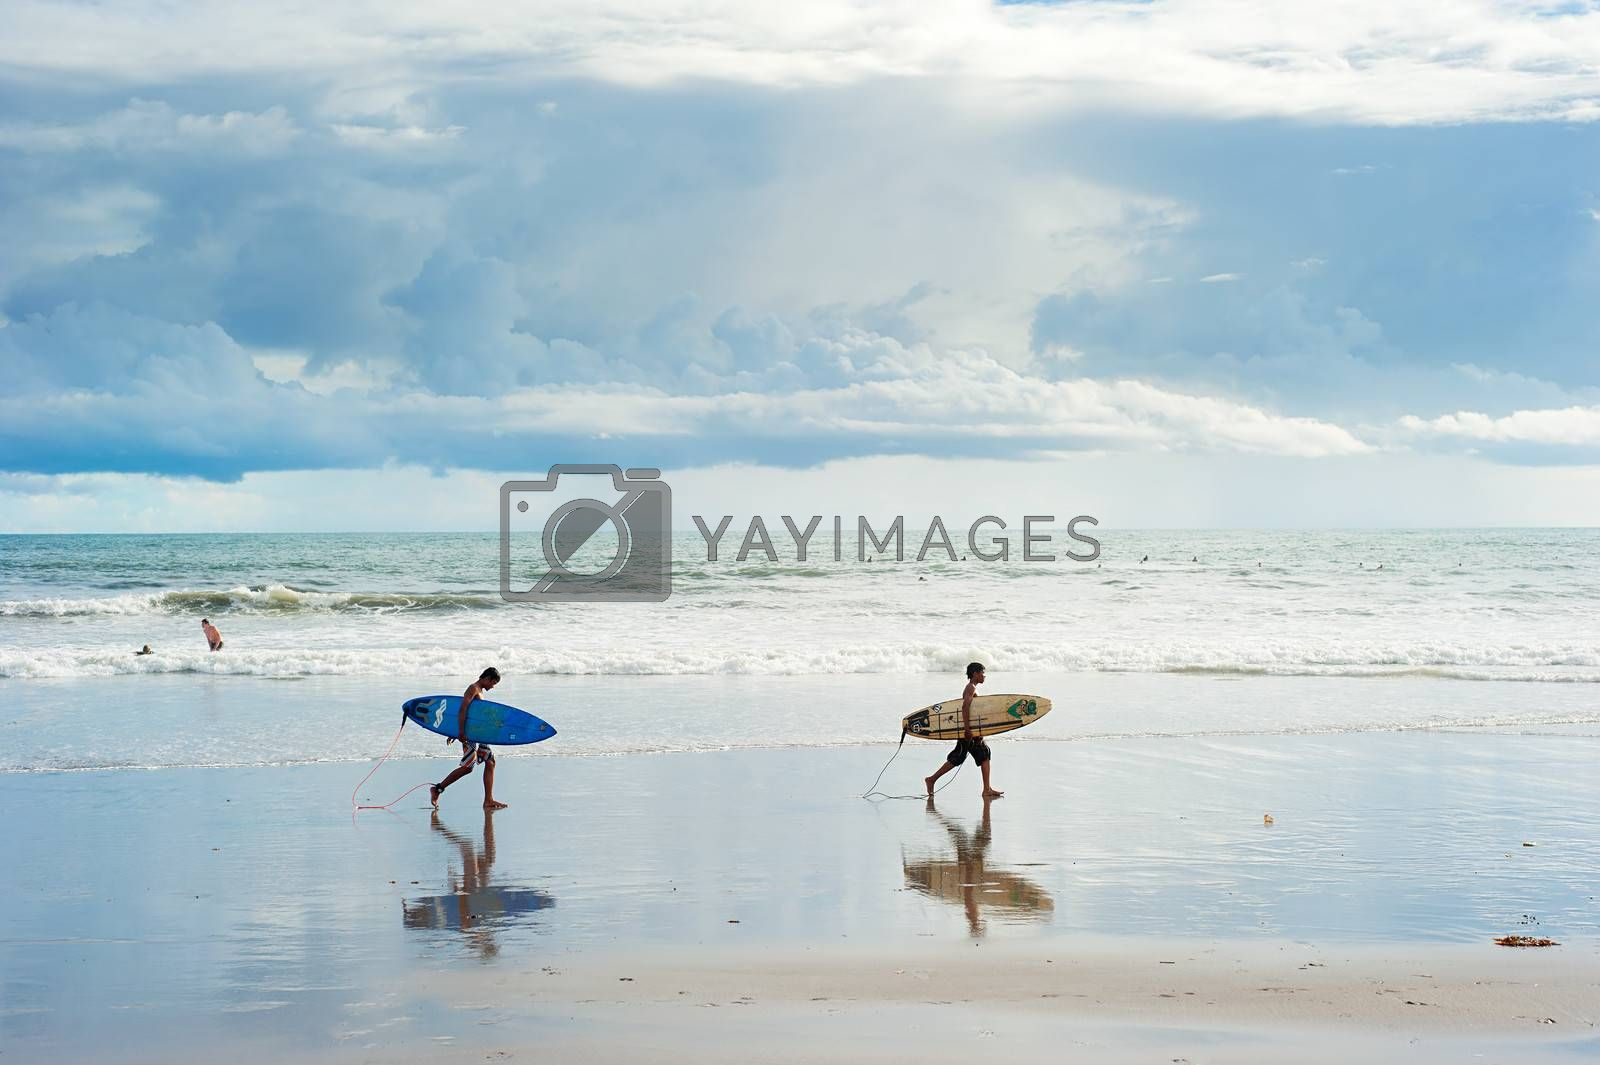 Bali island; Indonesia - March 16, 2013: Local boys walking with a surfboards on the beach. Bali is one of the top of world surfing destinations.